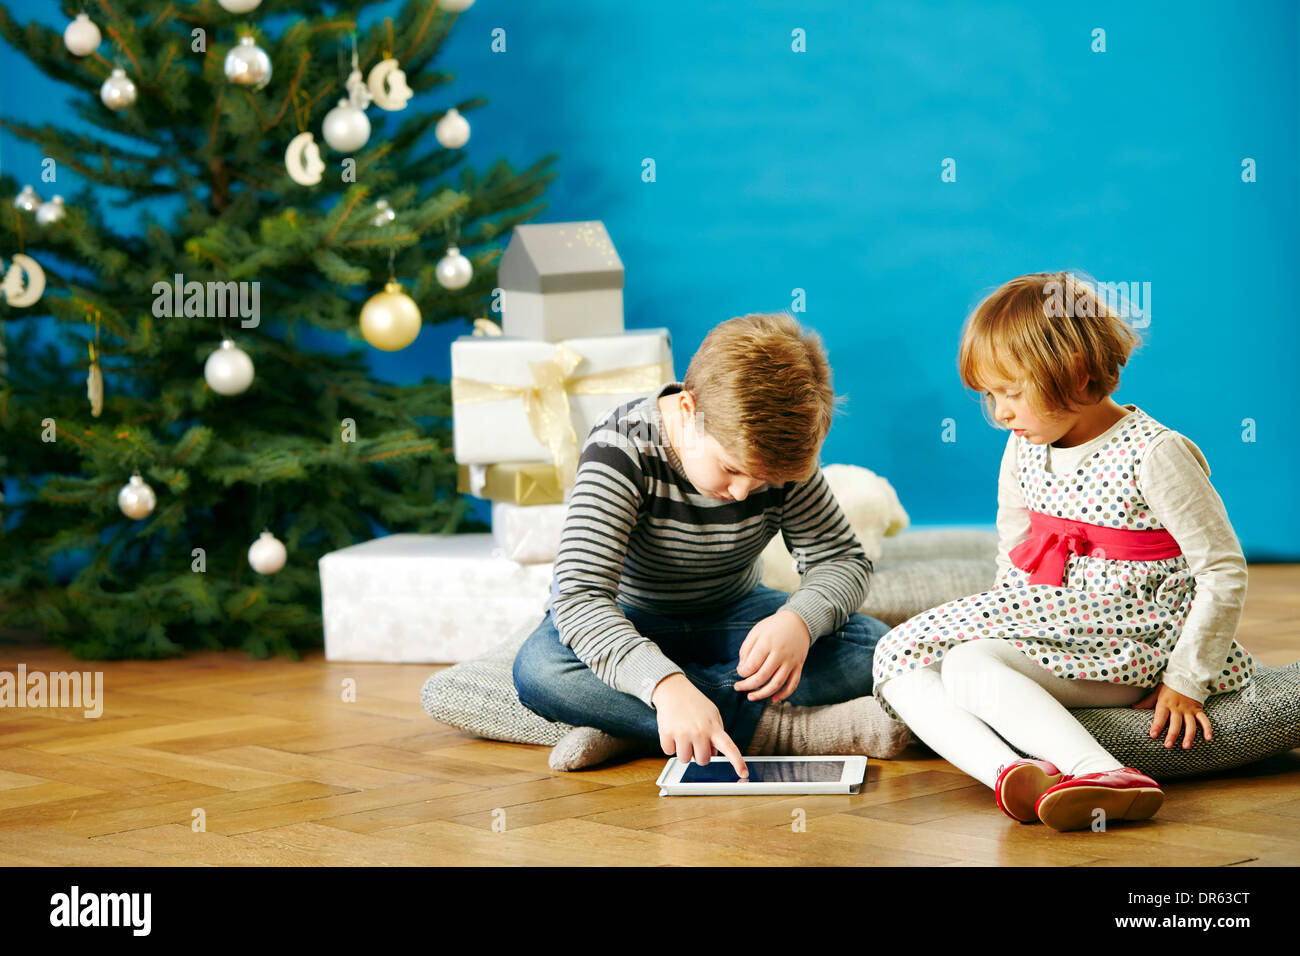 Children playing with digital tablet on Christmas Eve, Munich, Bavaria, Germany - Stock Image